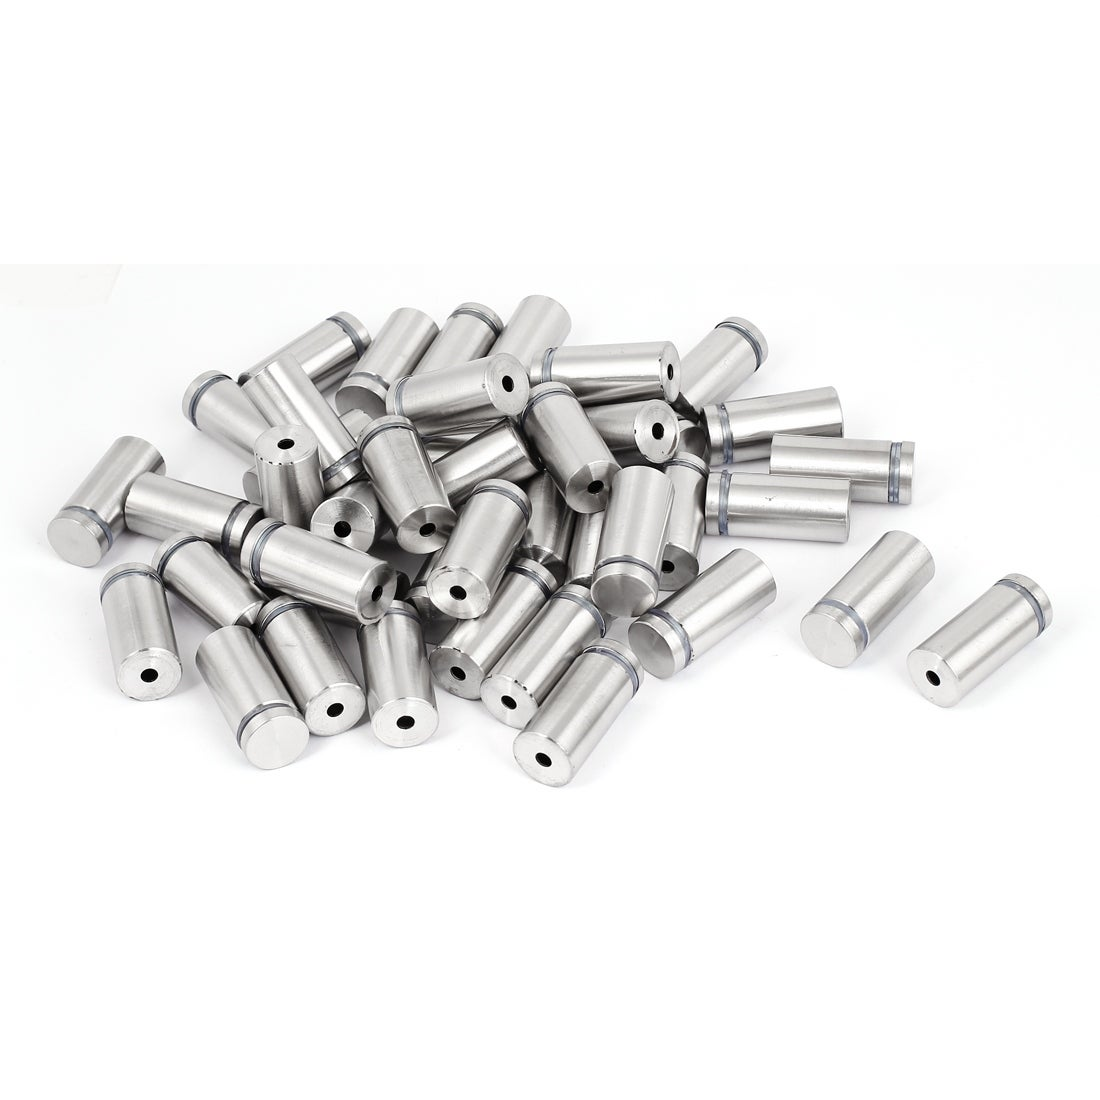 1-5/8 x 3/4 Stainless Steel Standoff Hardware 50pcs for Glass